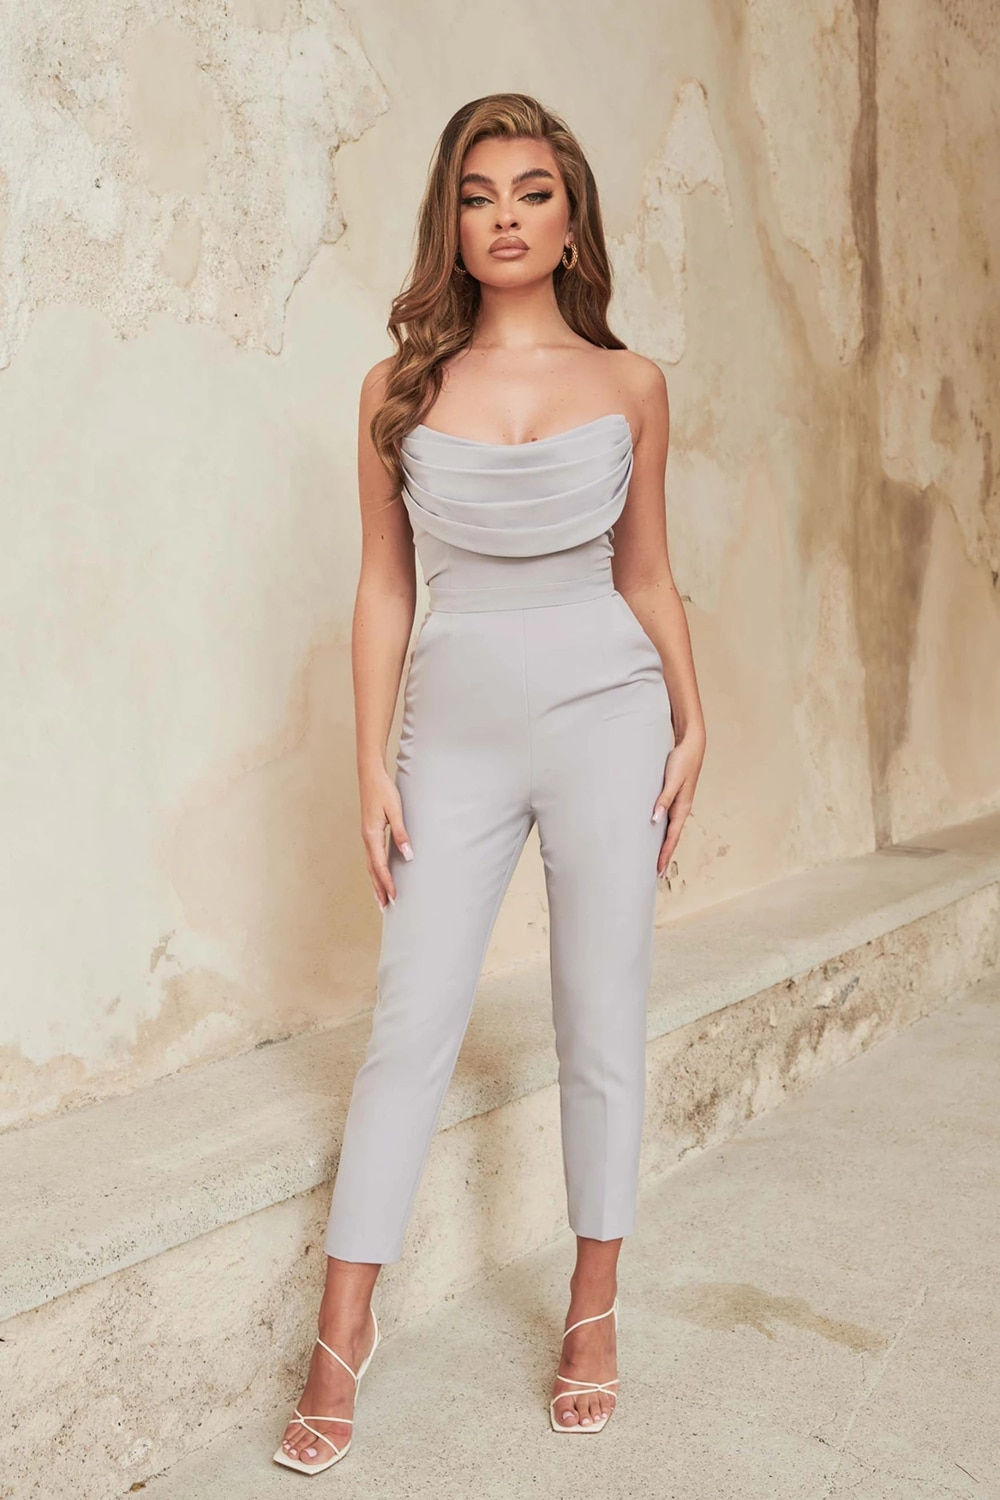 Lace Up Sleeveless Ladies Casual Bodycon Clothing Women Flare Pants Jumpsuit Sets